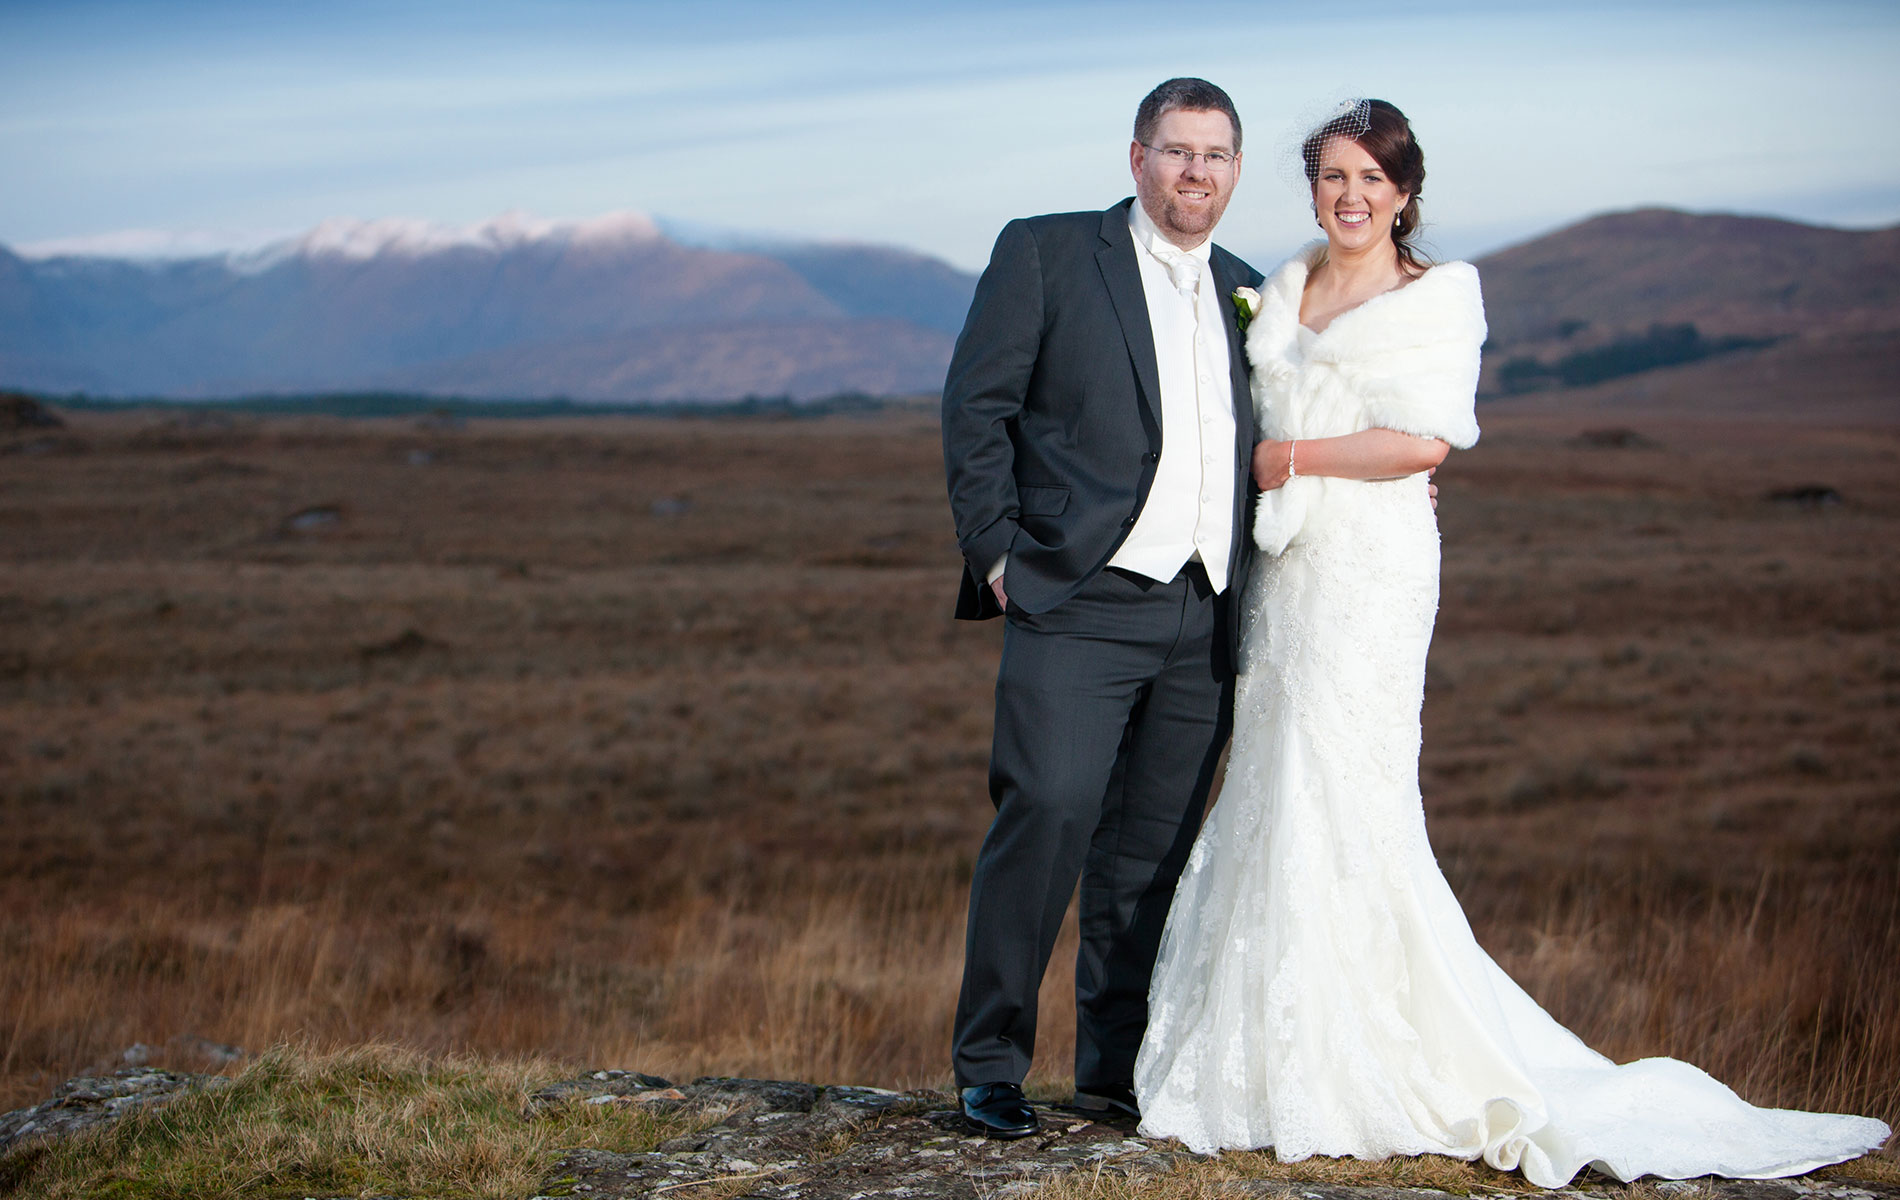 Ann-Marie Aspell and Tom O'Neill pose in front of a Connemara Landscape on their wedding day